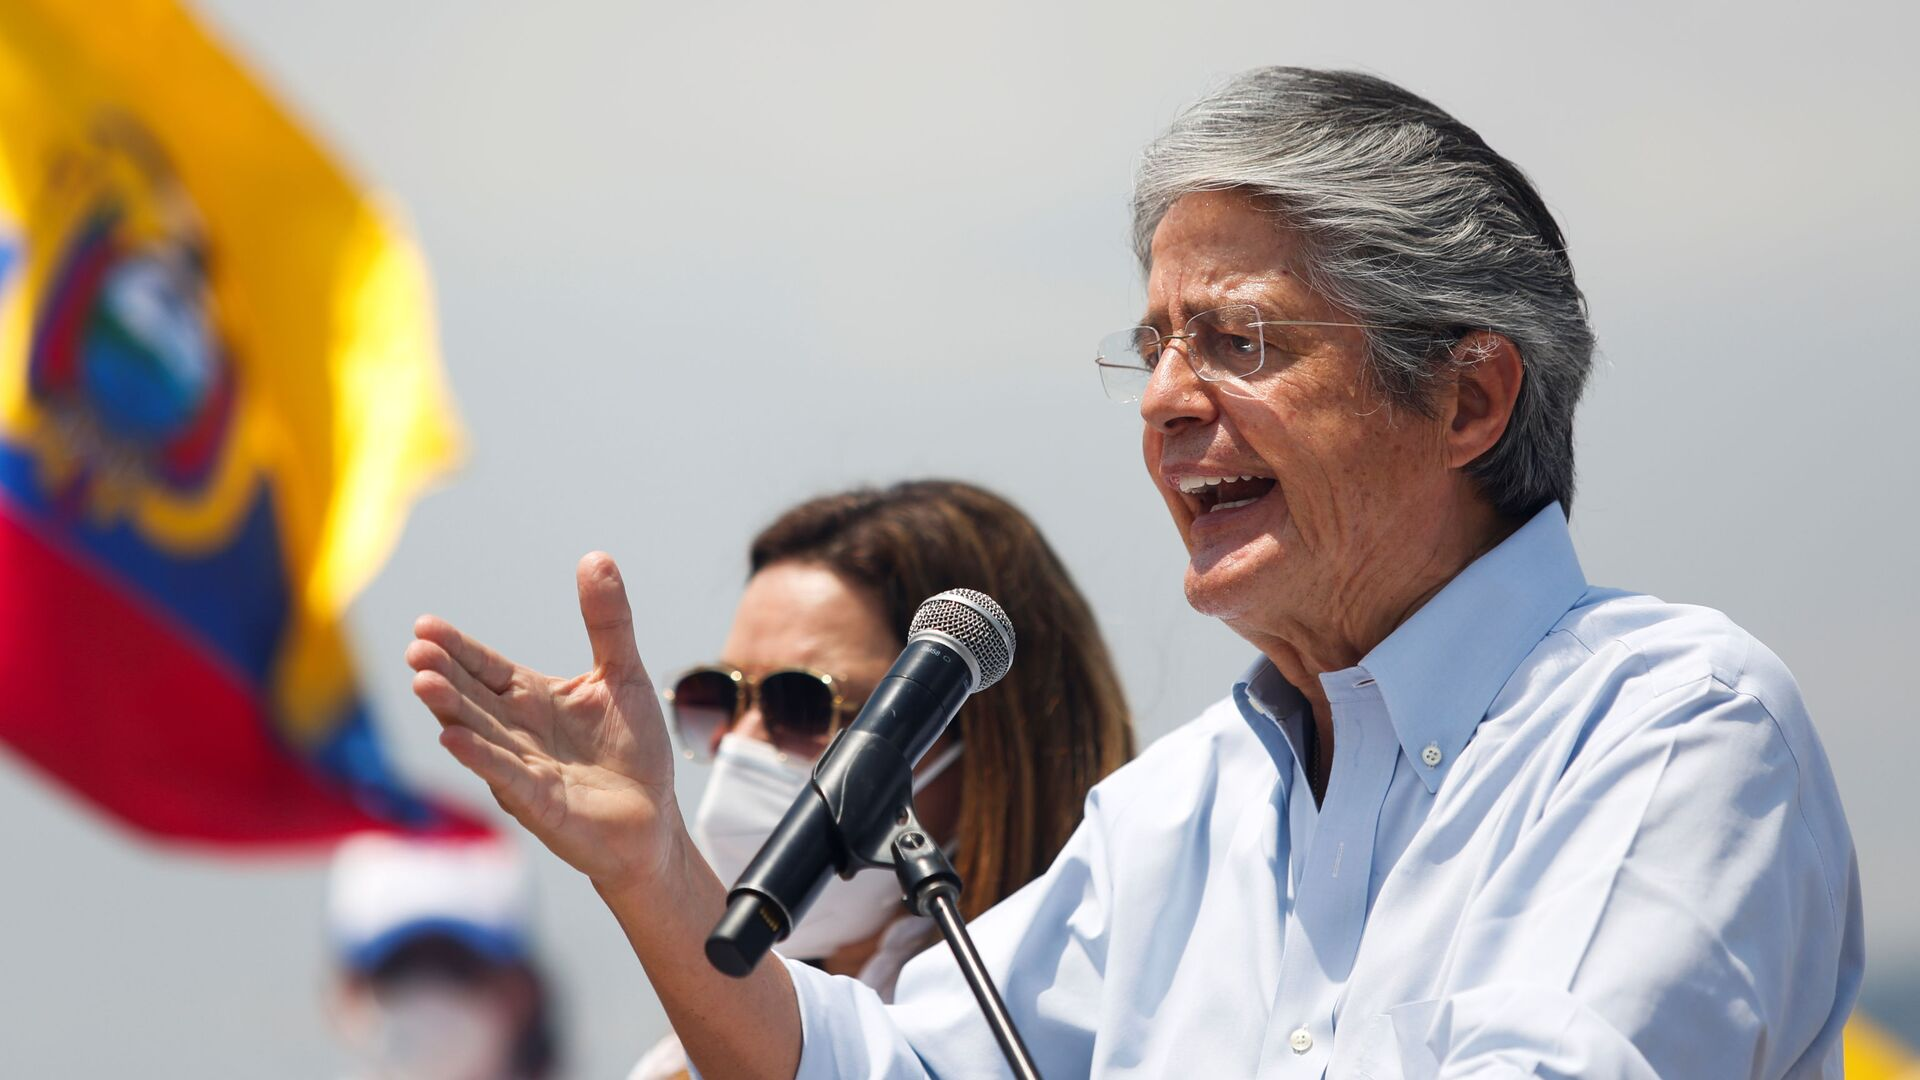 Ecuador's presidential candidate Guillermo Lasso gestures as he speaks during a closing campaign rally, in Guayaquil, Ecuador April 8, 2021. - Sputnik International, 1920, 11.10.2021